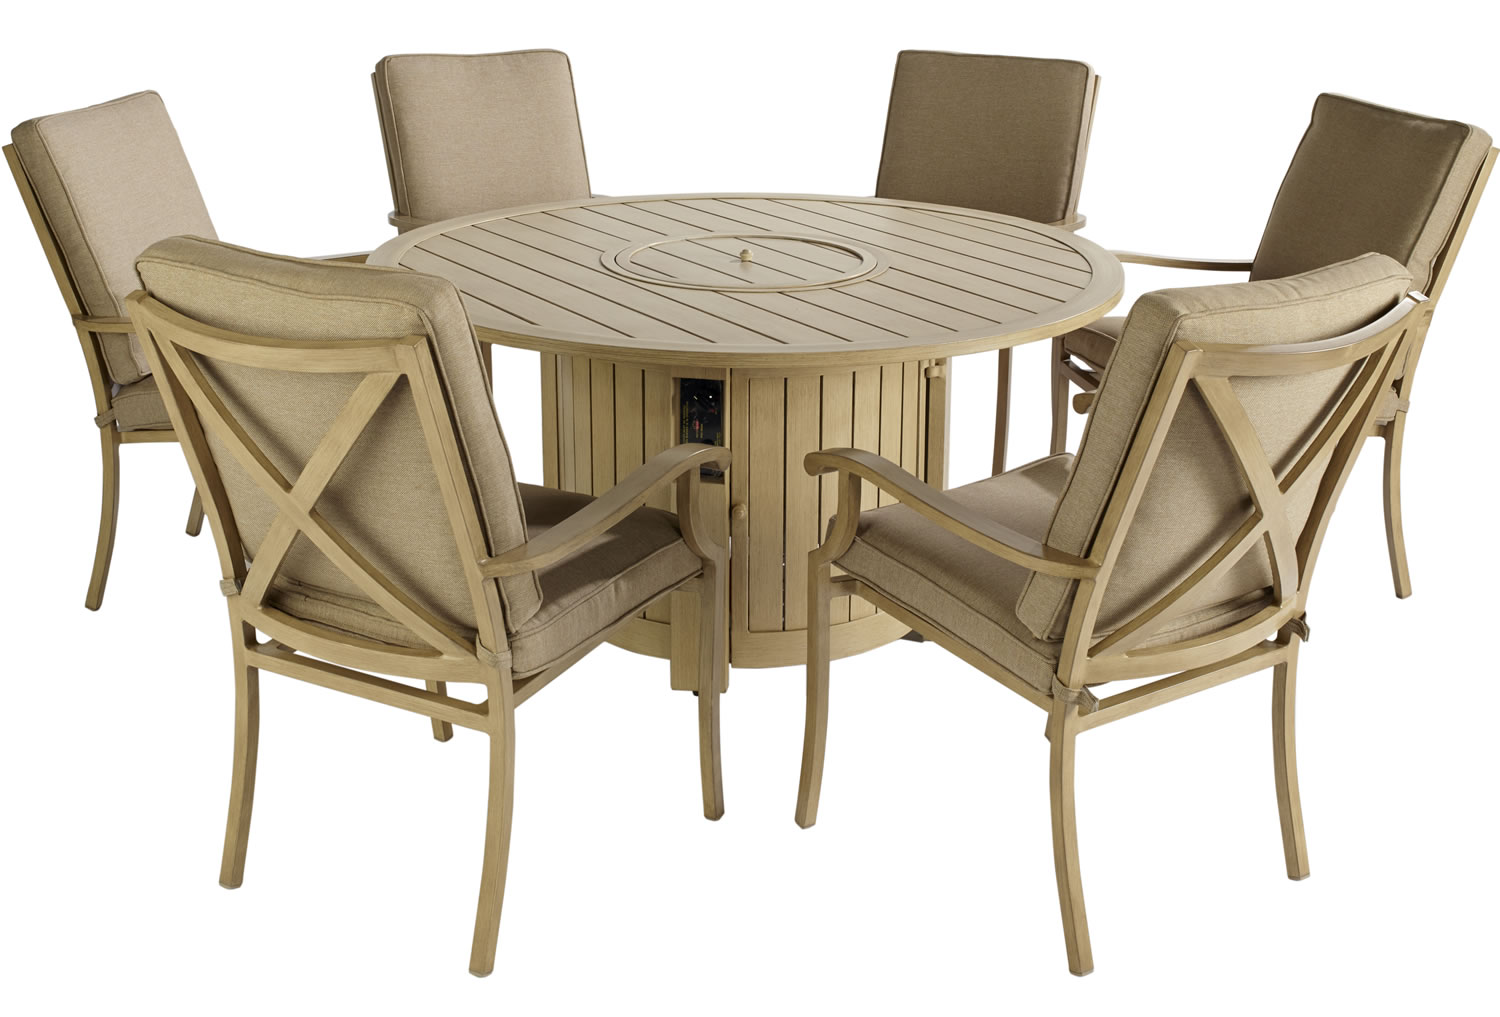 Portland Round 6 Seater Dining Set With Fire Pit 1650